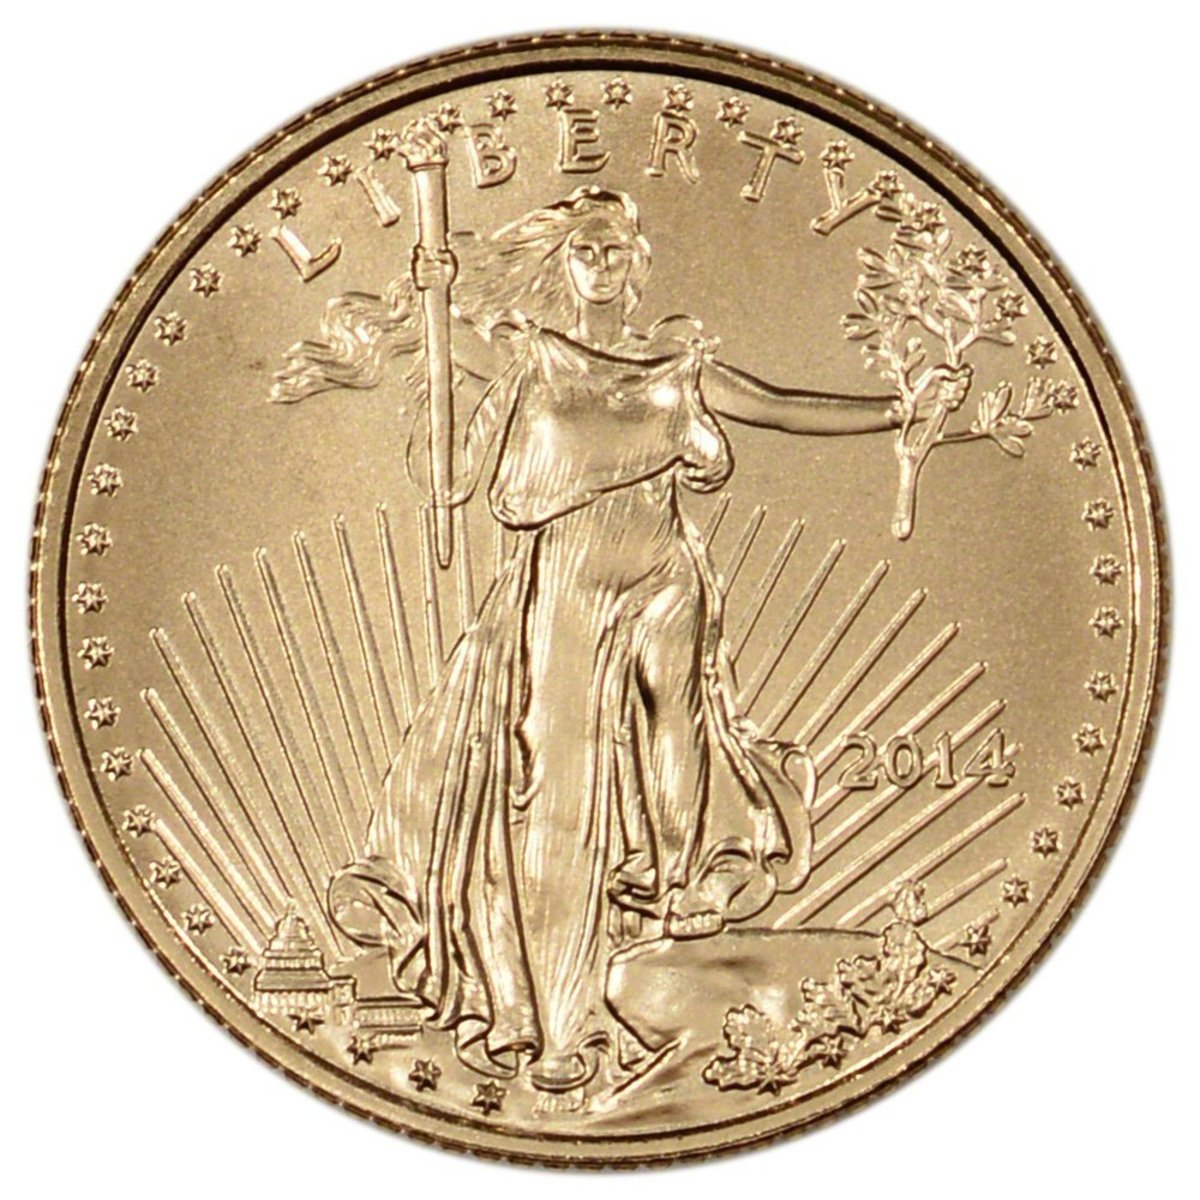 2014American Gold Eagle Coin Gift – Front